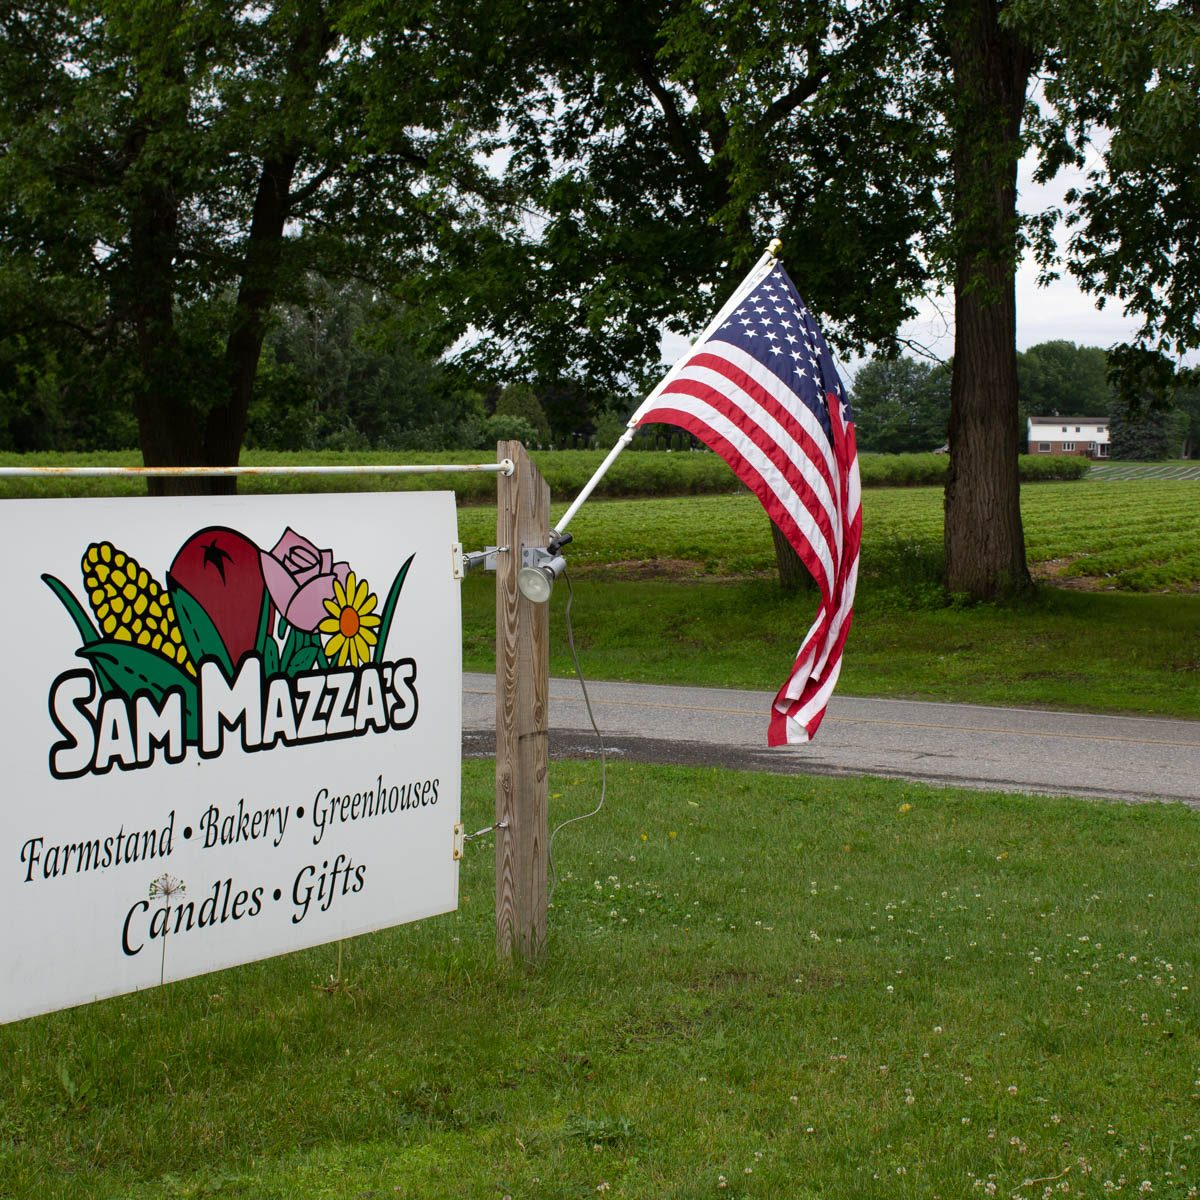 Sam Mazza's Farm Market sign